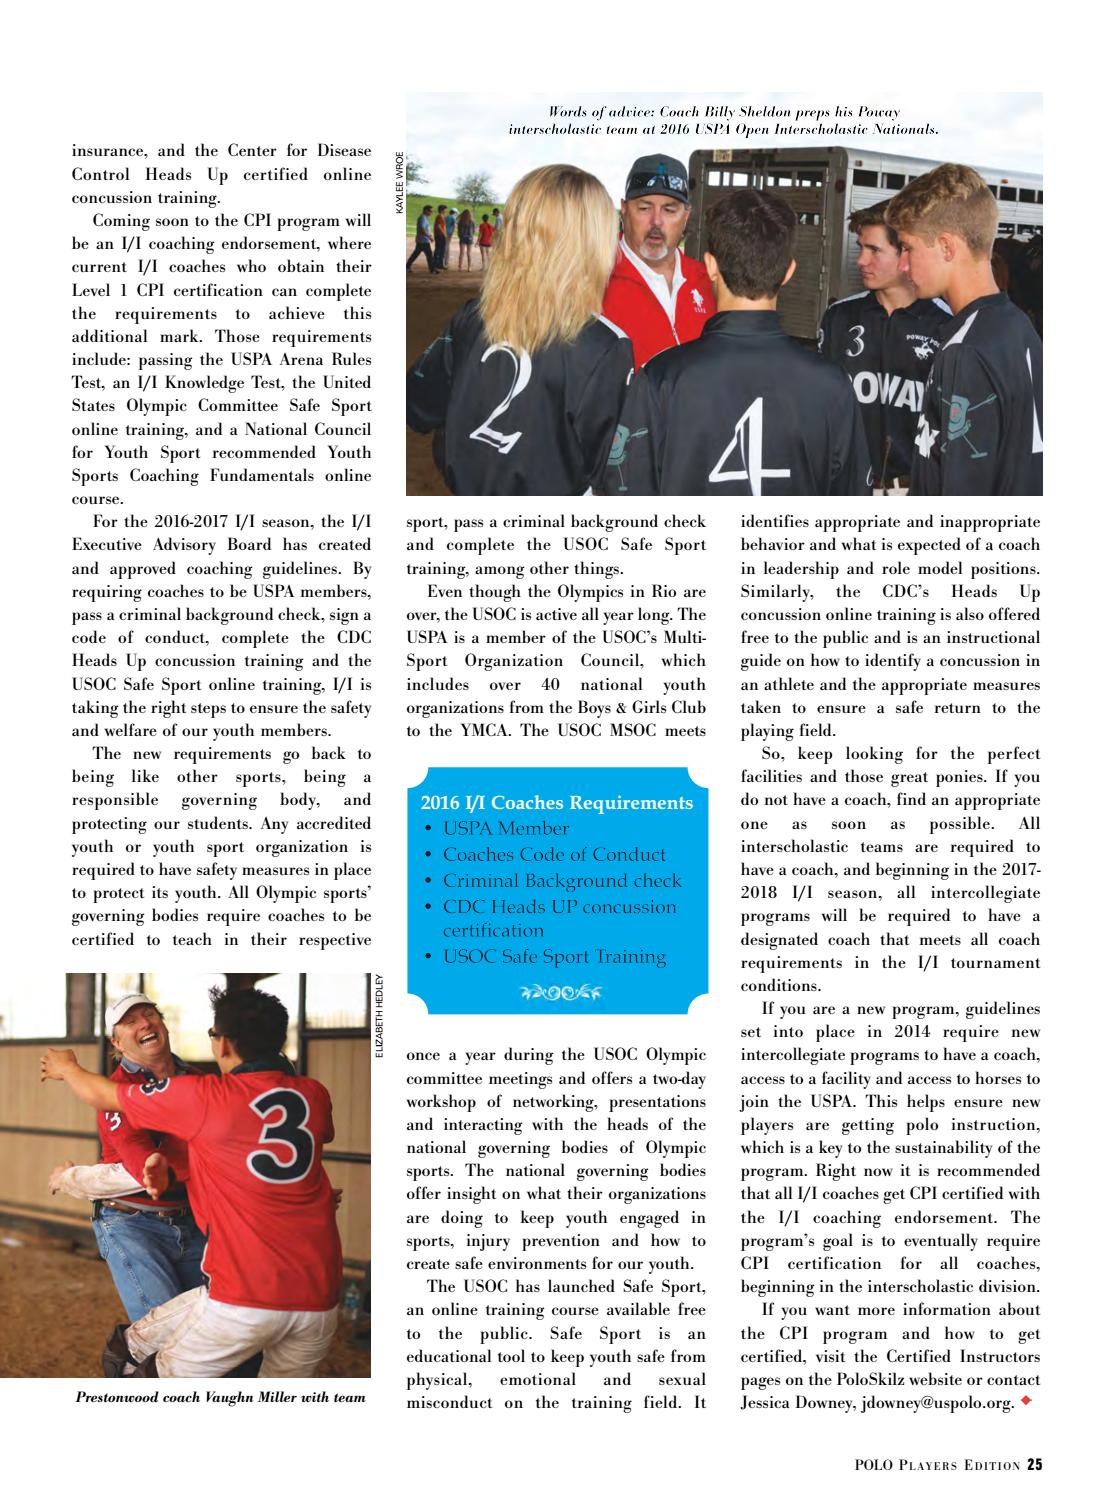 October 2016 Polo Players Edition By United States Polo Association